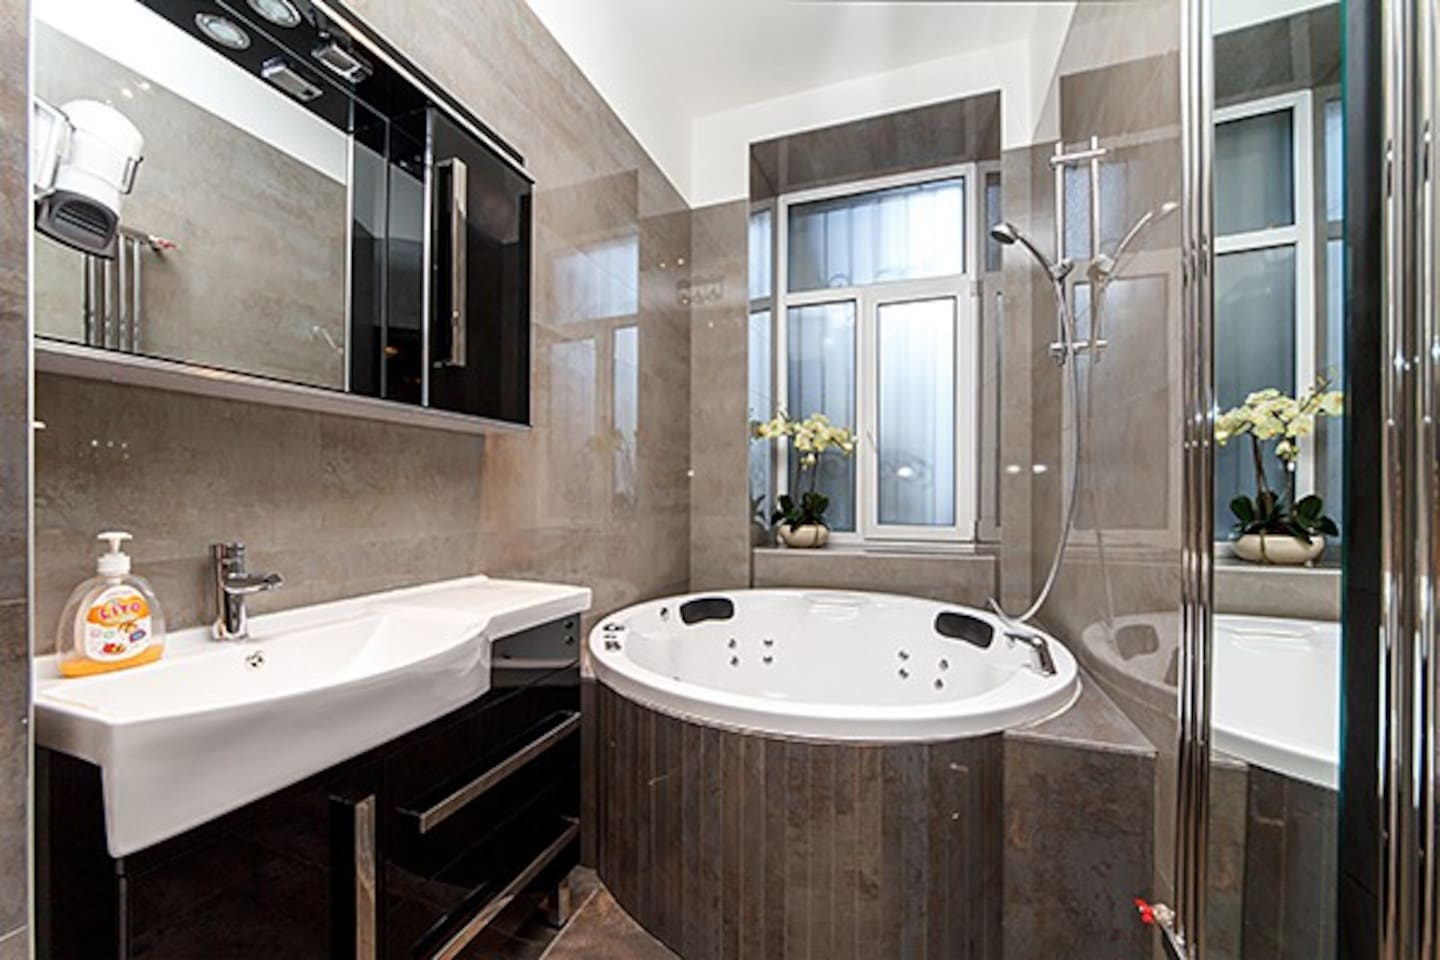 Spacious well designed bathroom with jacuzzi, big wash basin and toilet.